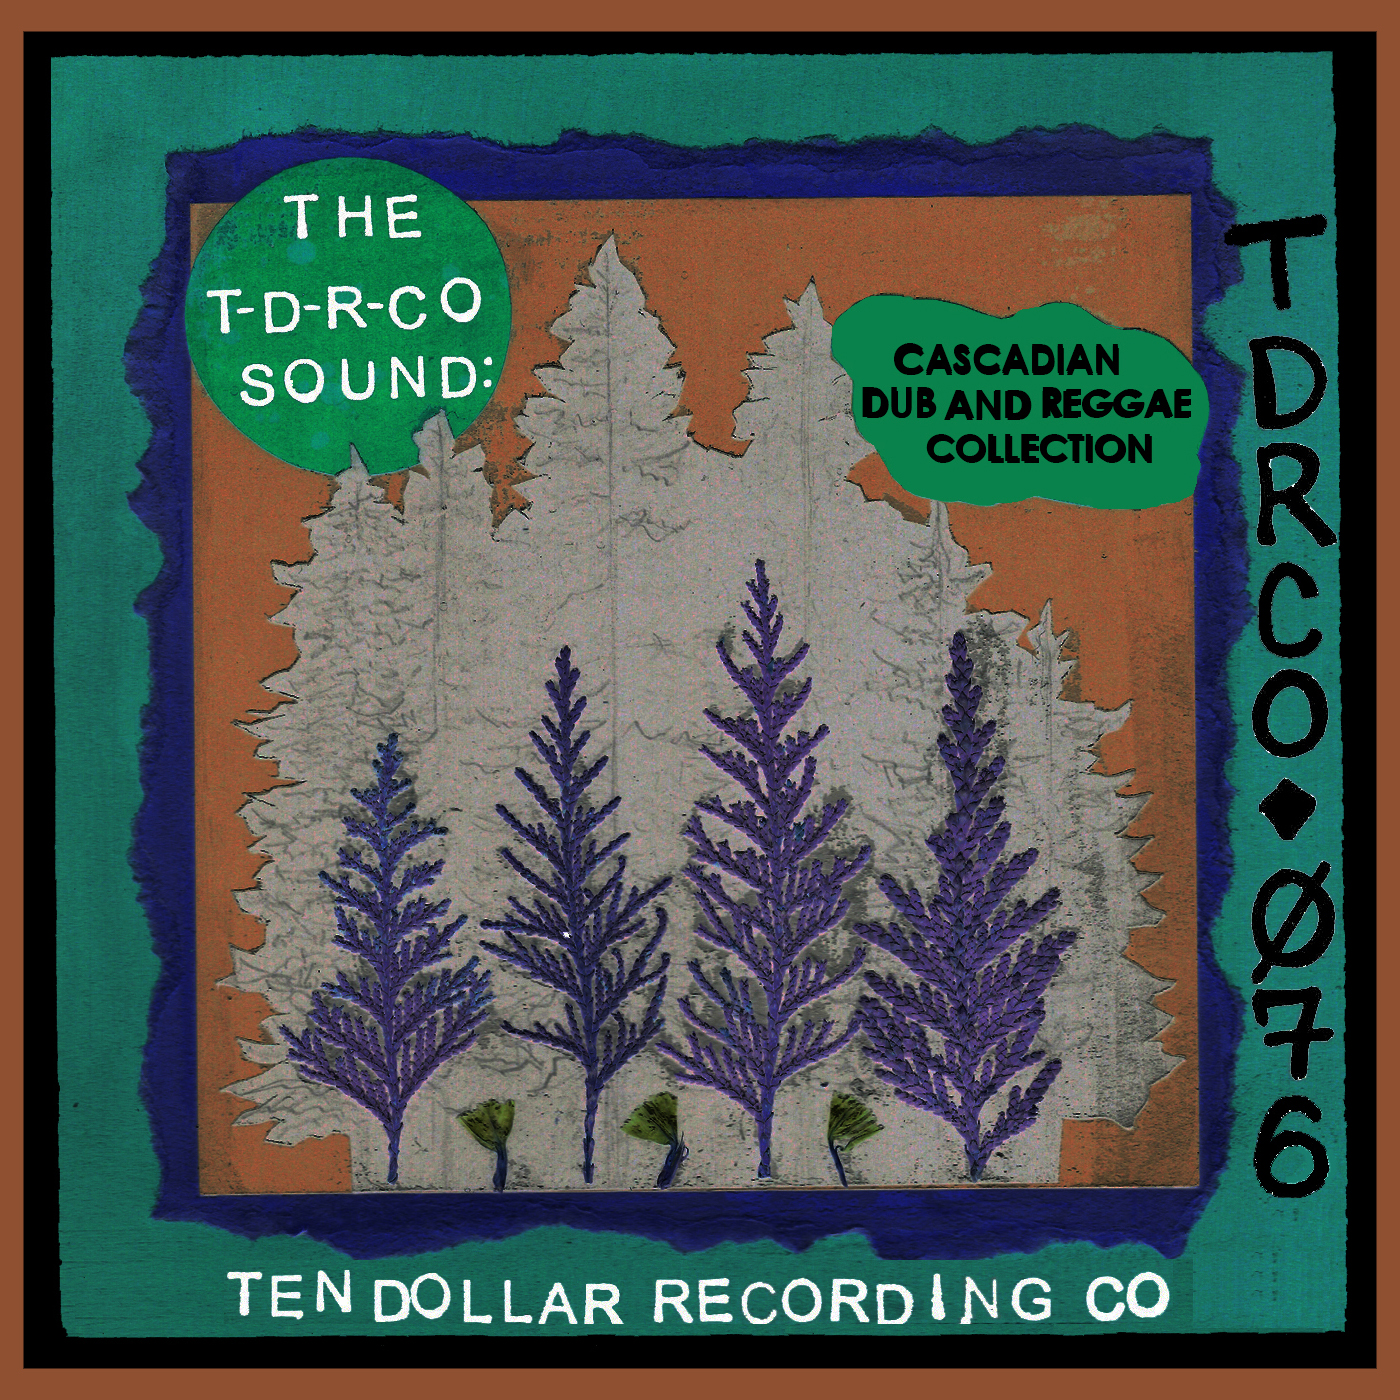 The T-D-R-Co Sound: Cascadian Dub and Reggae Collection - Ten Dollar